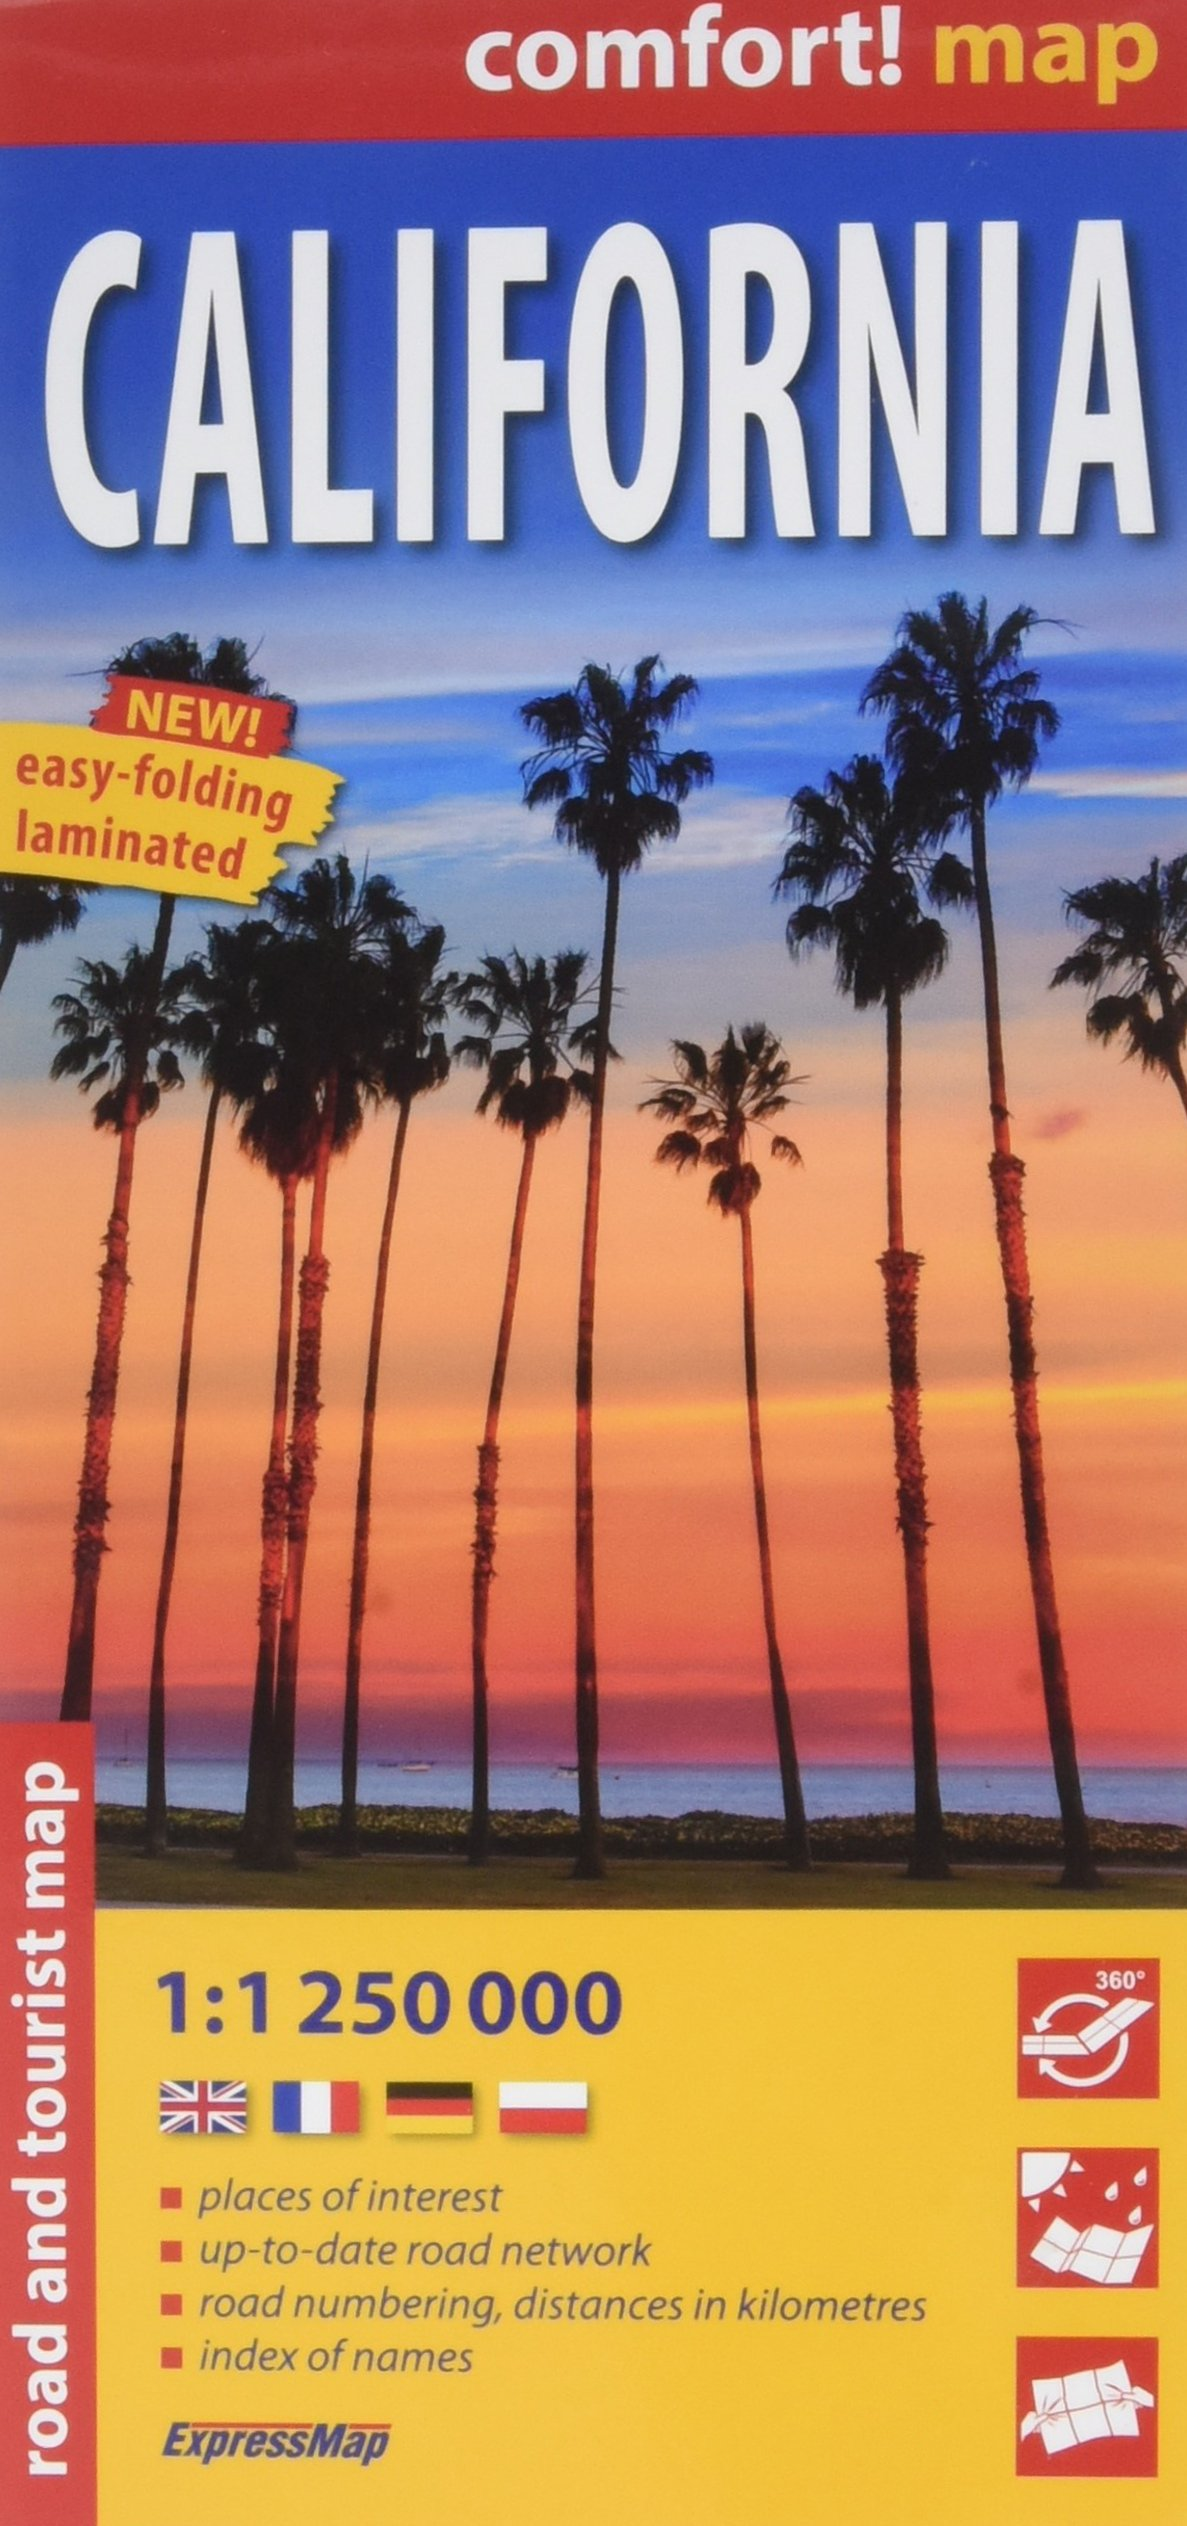 Californie : 1/1 250 000 Carte – Carte pliée, 23 juin 2017 Express Map 8380462866 California HI